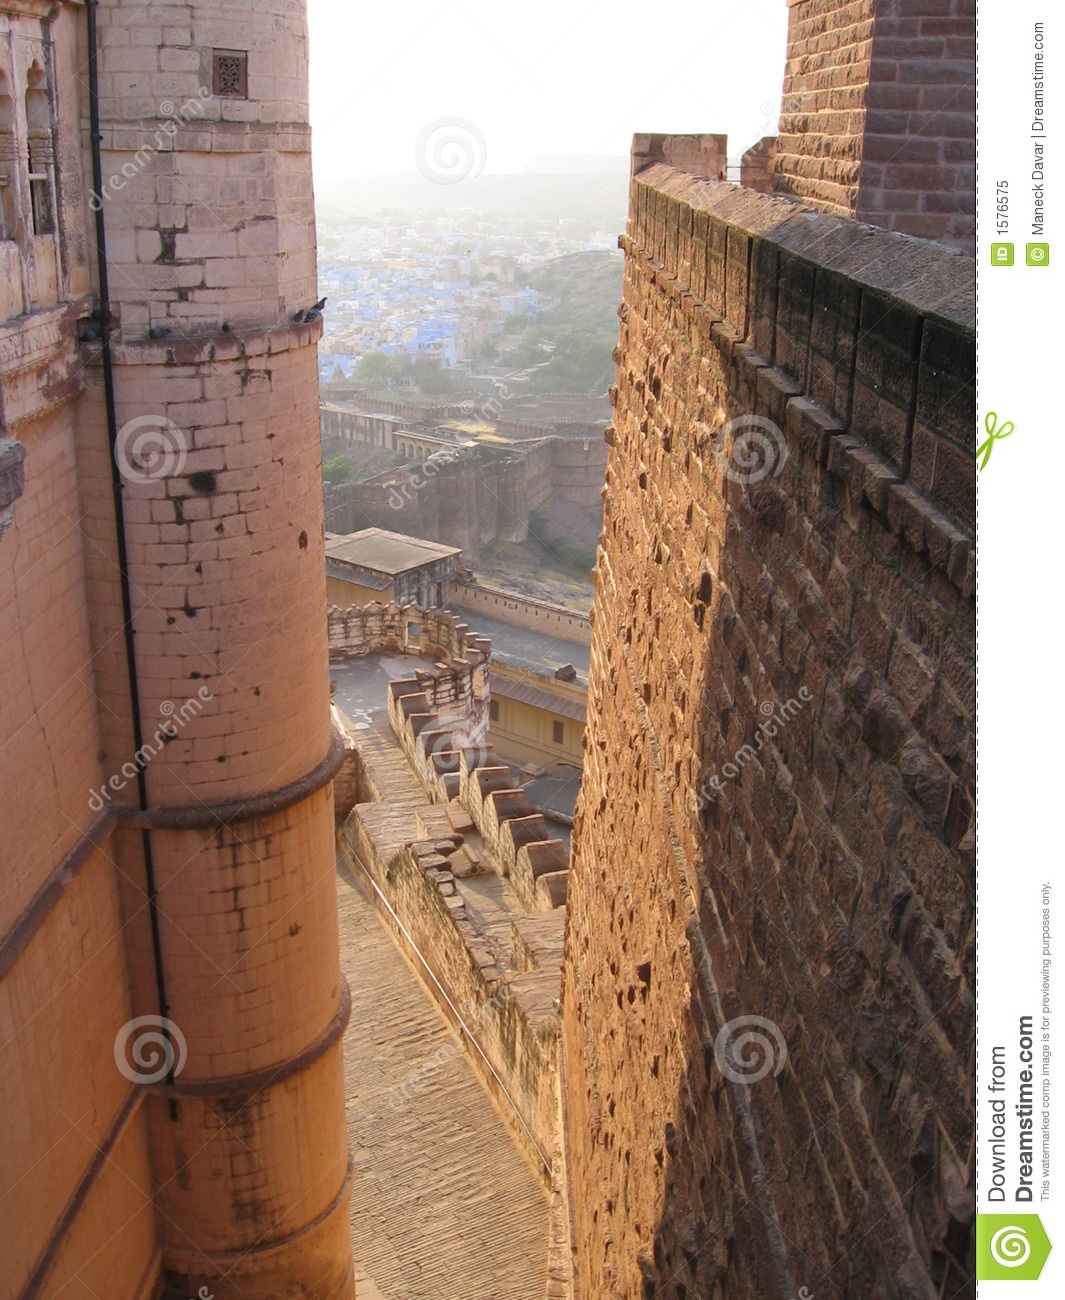 http://www.dreamstime.com/royalty-free-stock-photo-fort-walls-meherangarh-jodhpur-rajasthan-india-image1576575